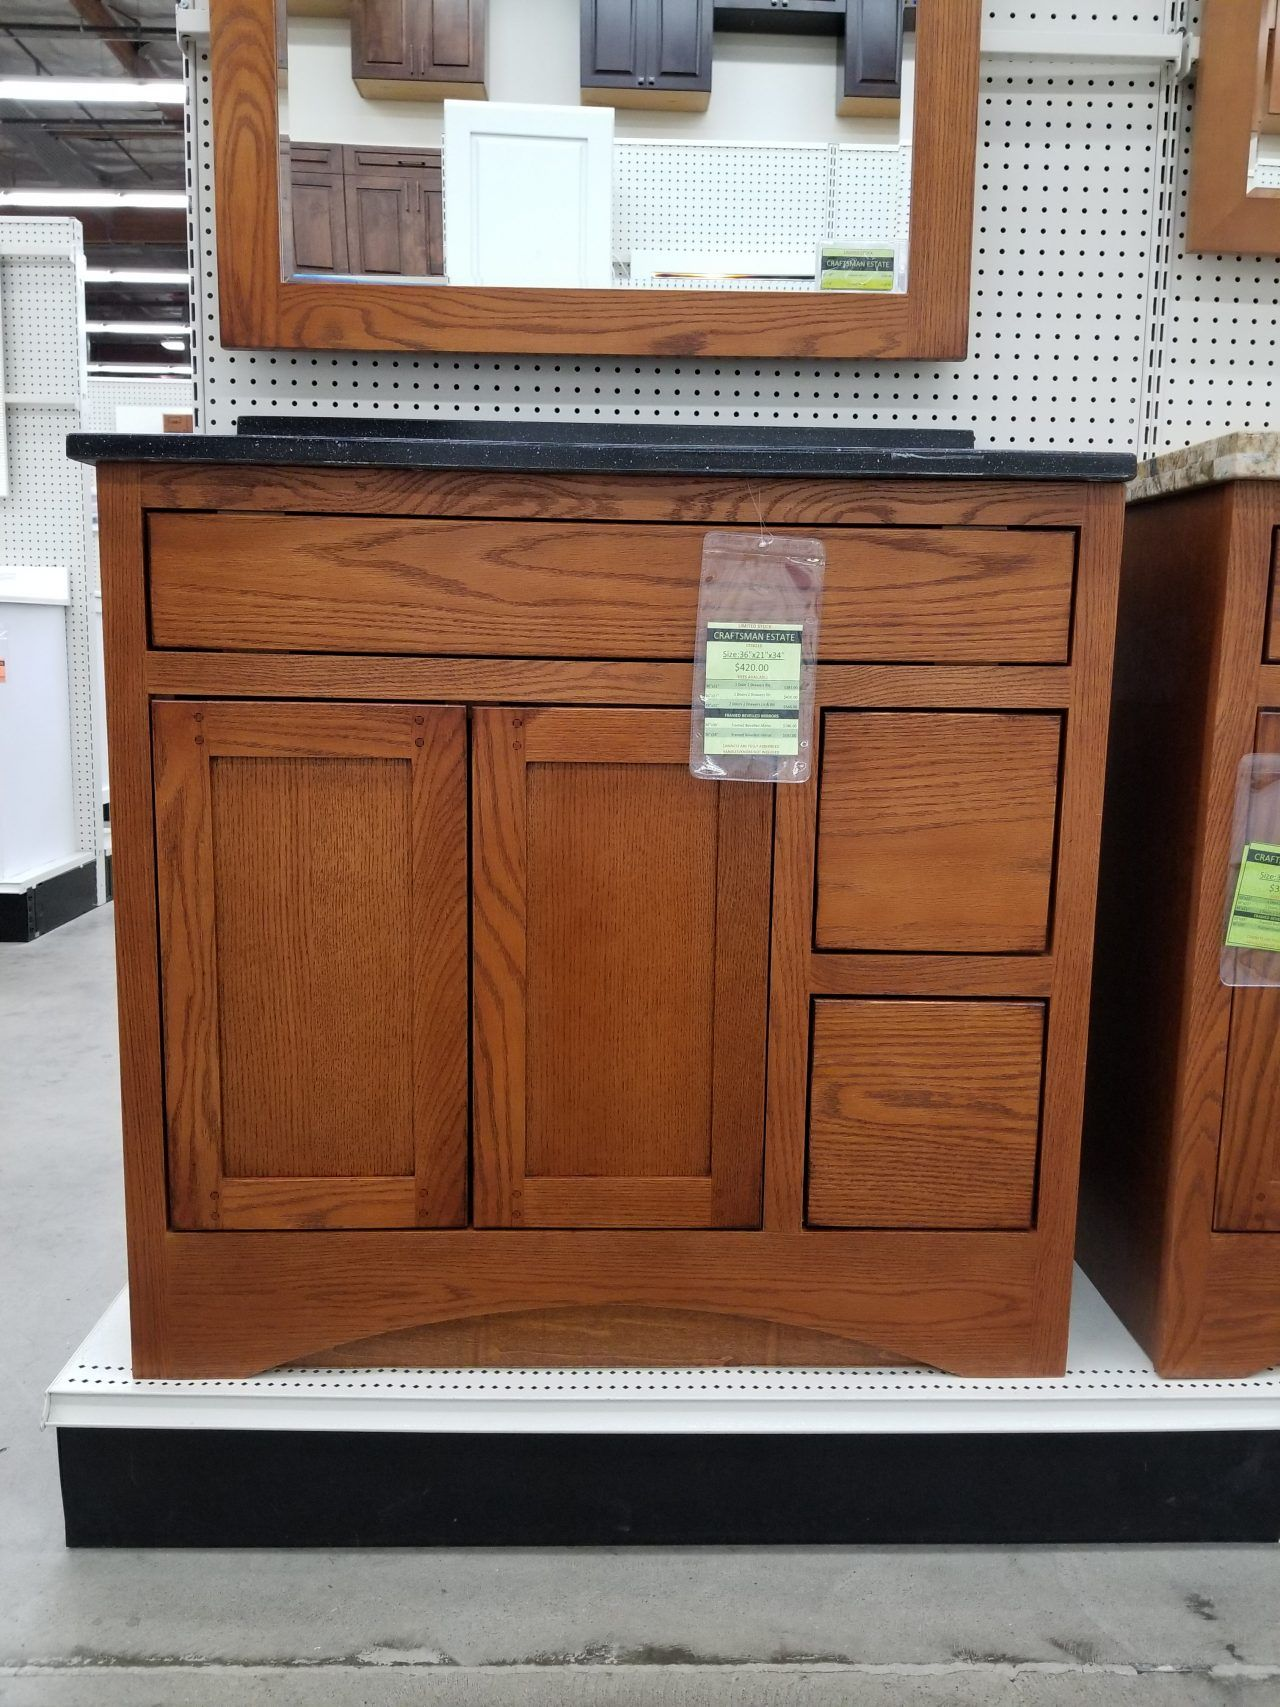 Craftsman Estate Vanity Closeout Builders Surplus Wholesale Kitchen And Bathroom Cabinets In Los Angeles California Kitchen Cabinets In Bathroom Cheap Cabinets Cabinet